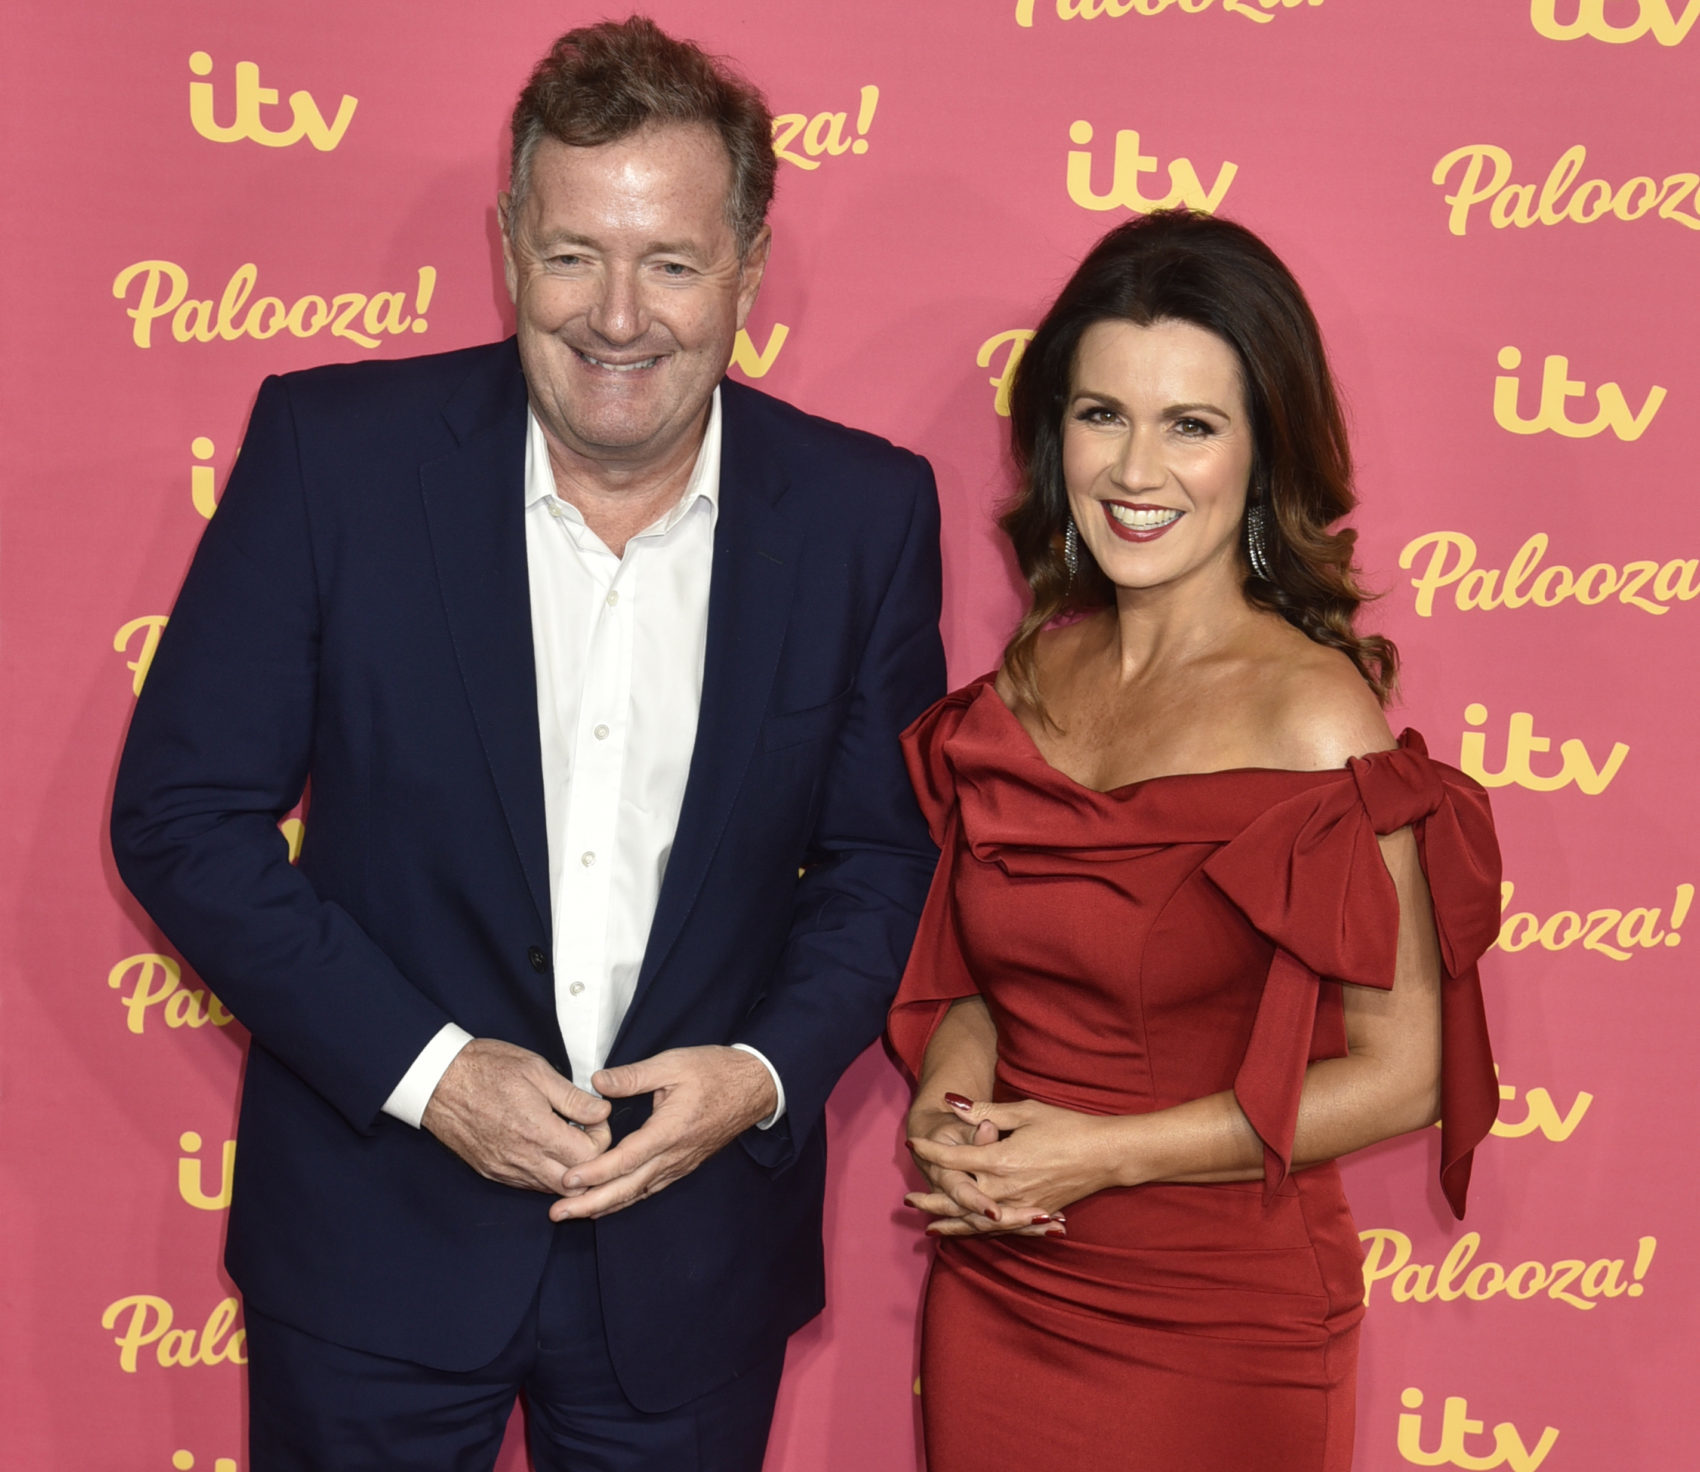 Piers Morgan with GMB co-host Susanna Reid